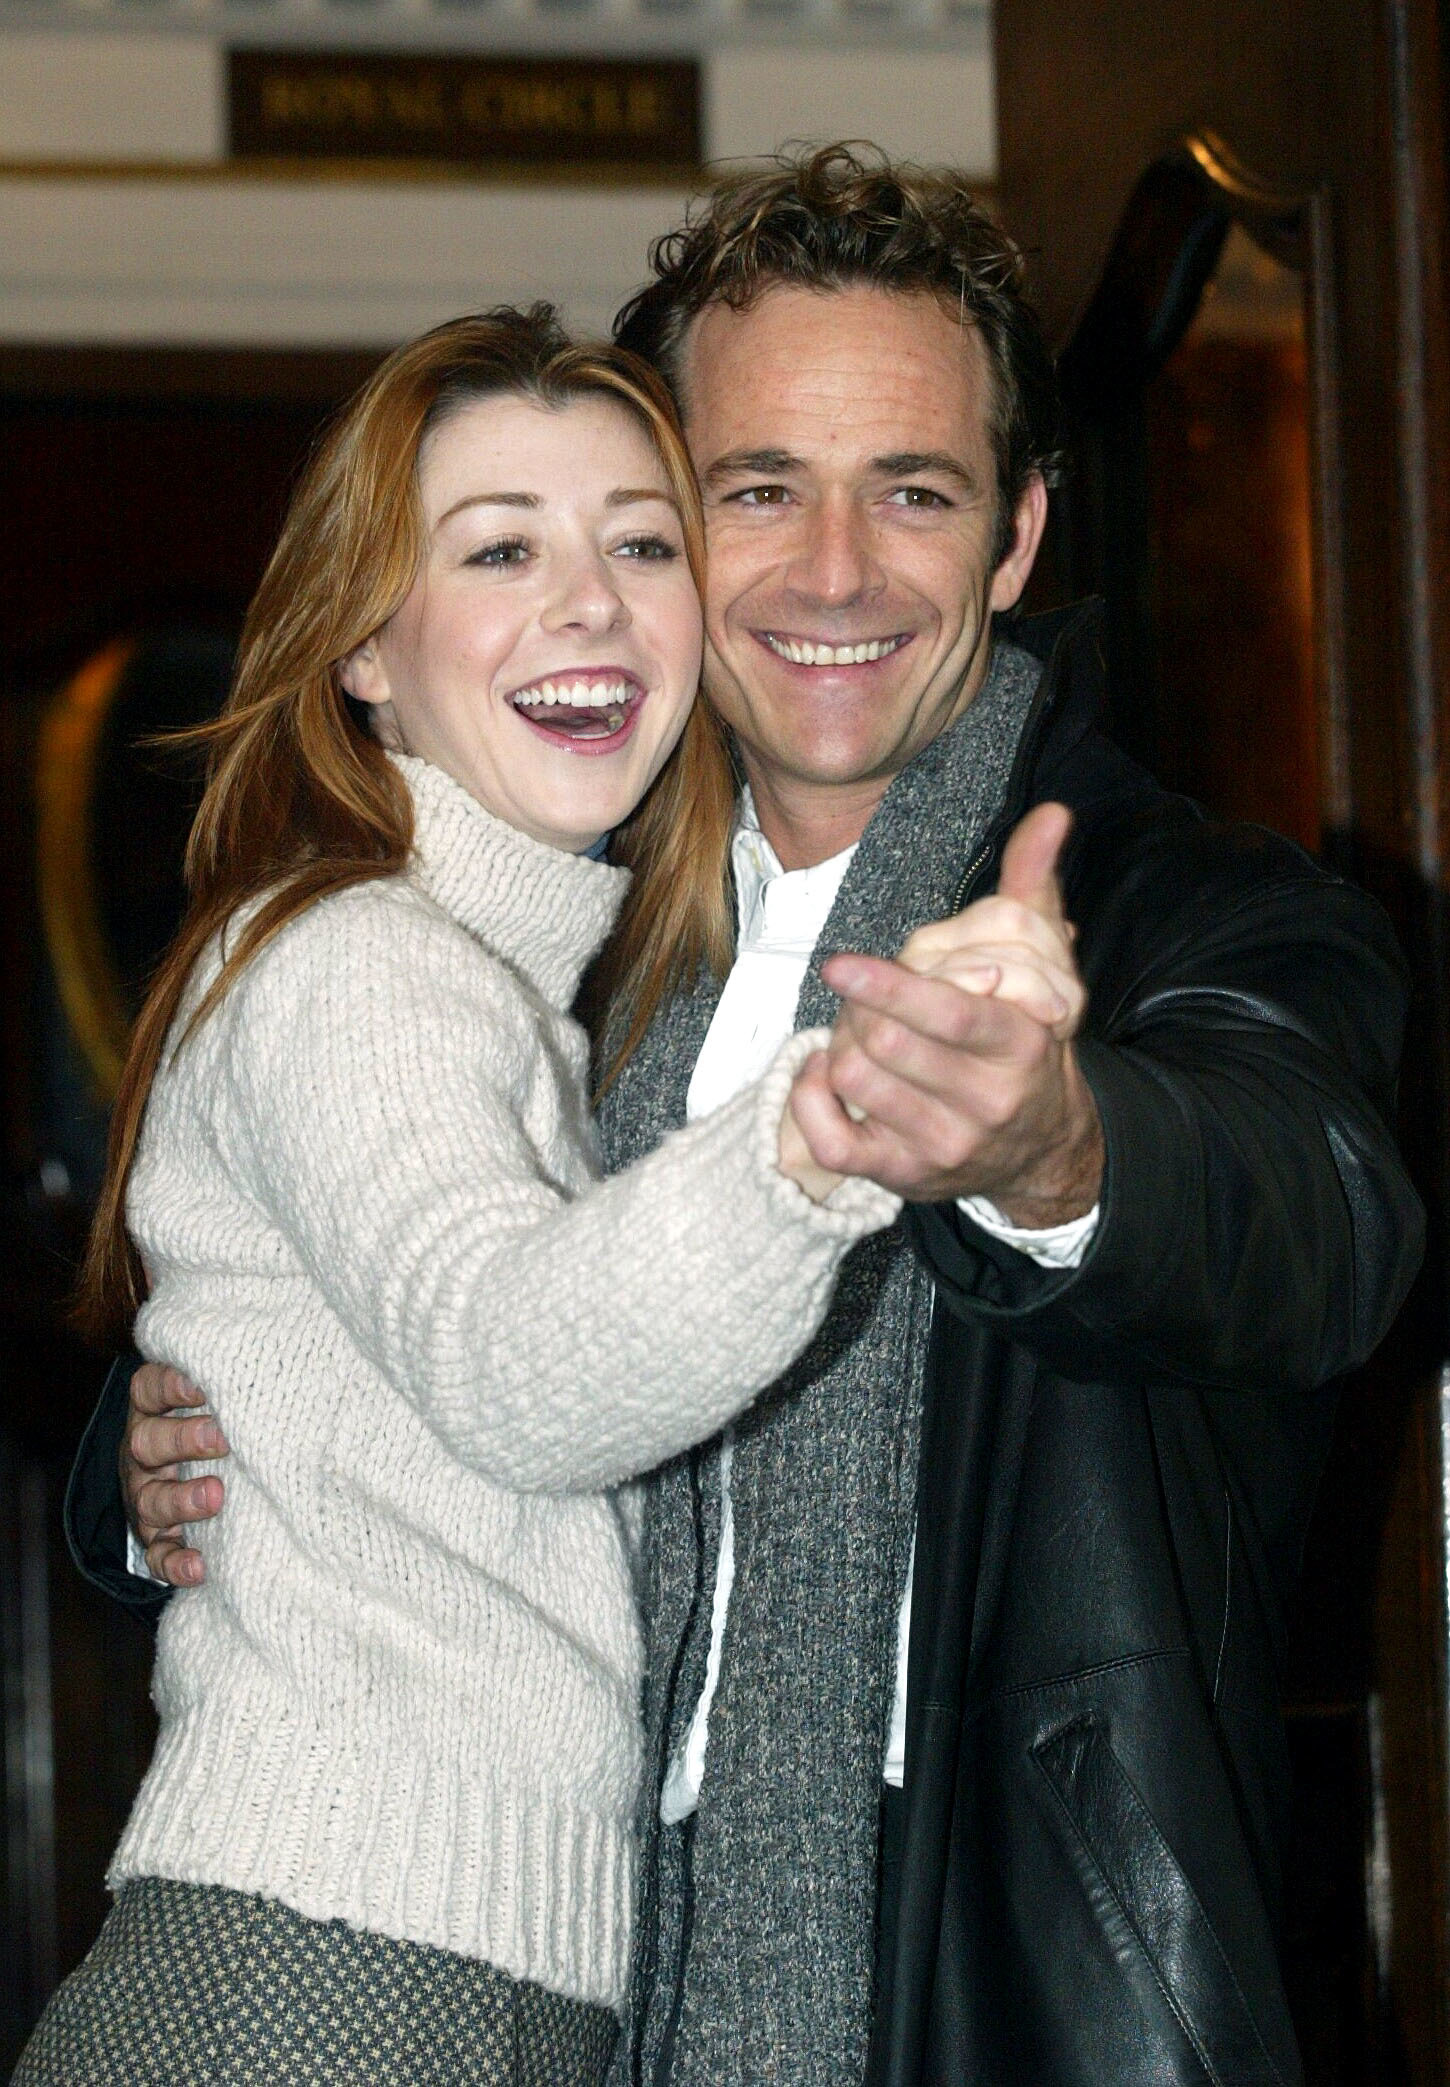 """Alyson Hannigan and Luke Perry appear in a promotional photo from their play """"When Harry Met Sally"""" in London on Jan. 8, 2004."""